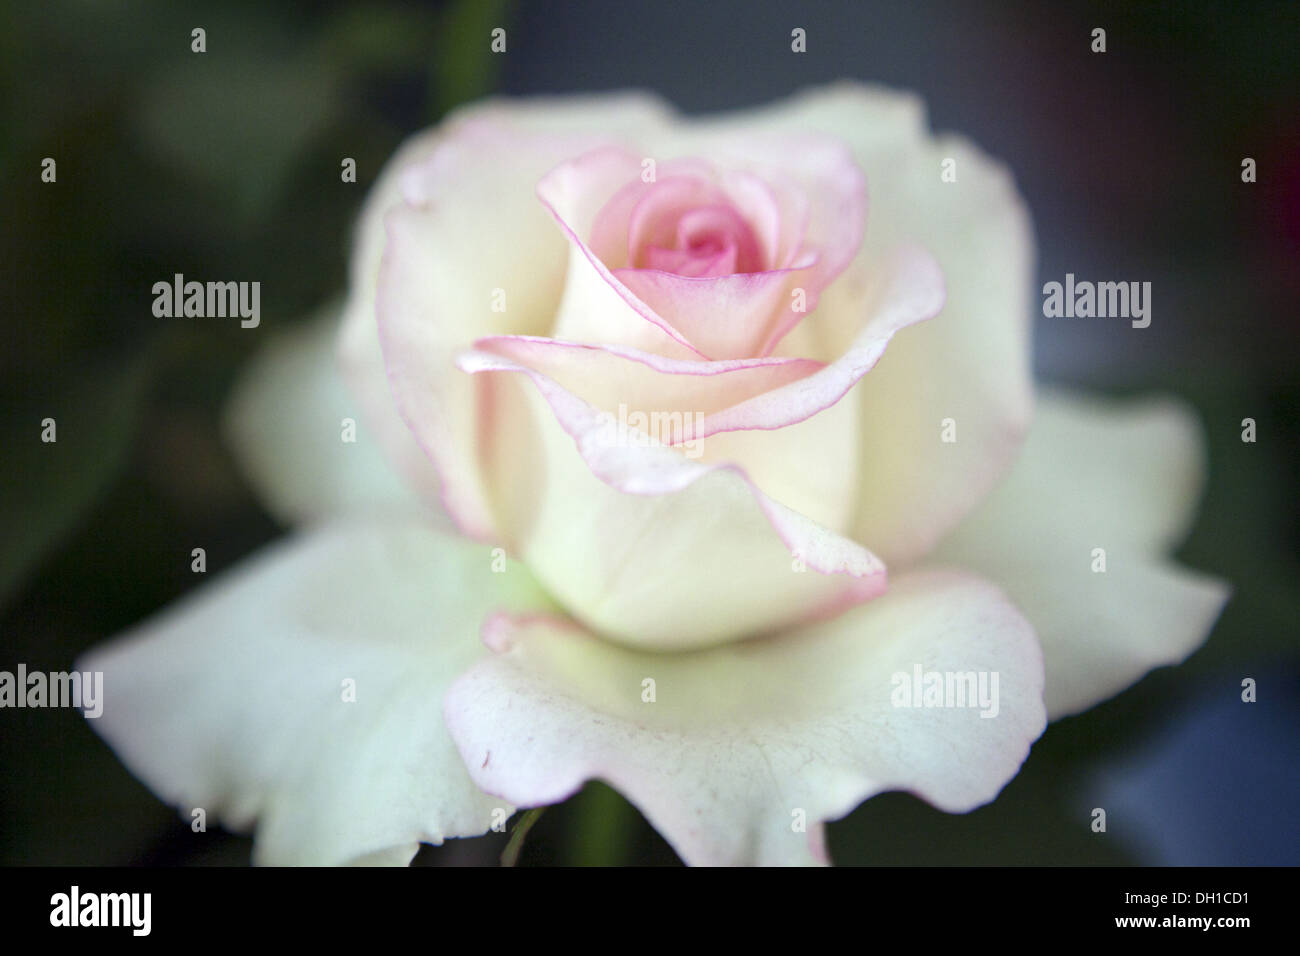 white pink Rose flower close up Stock Photo